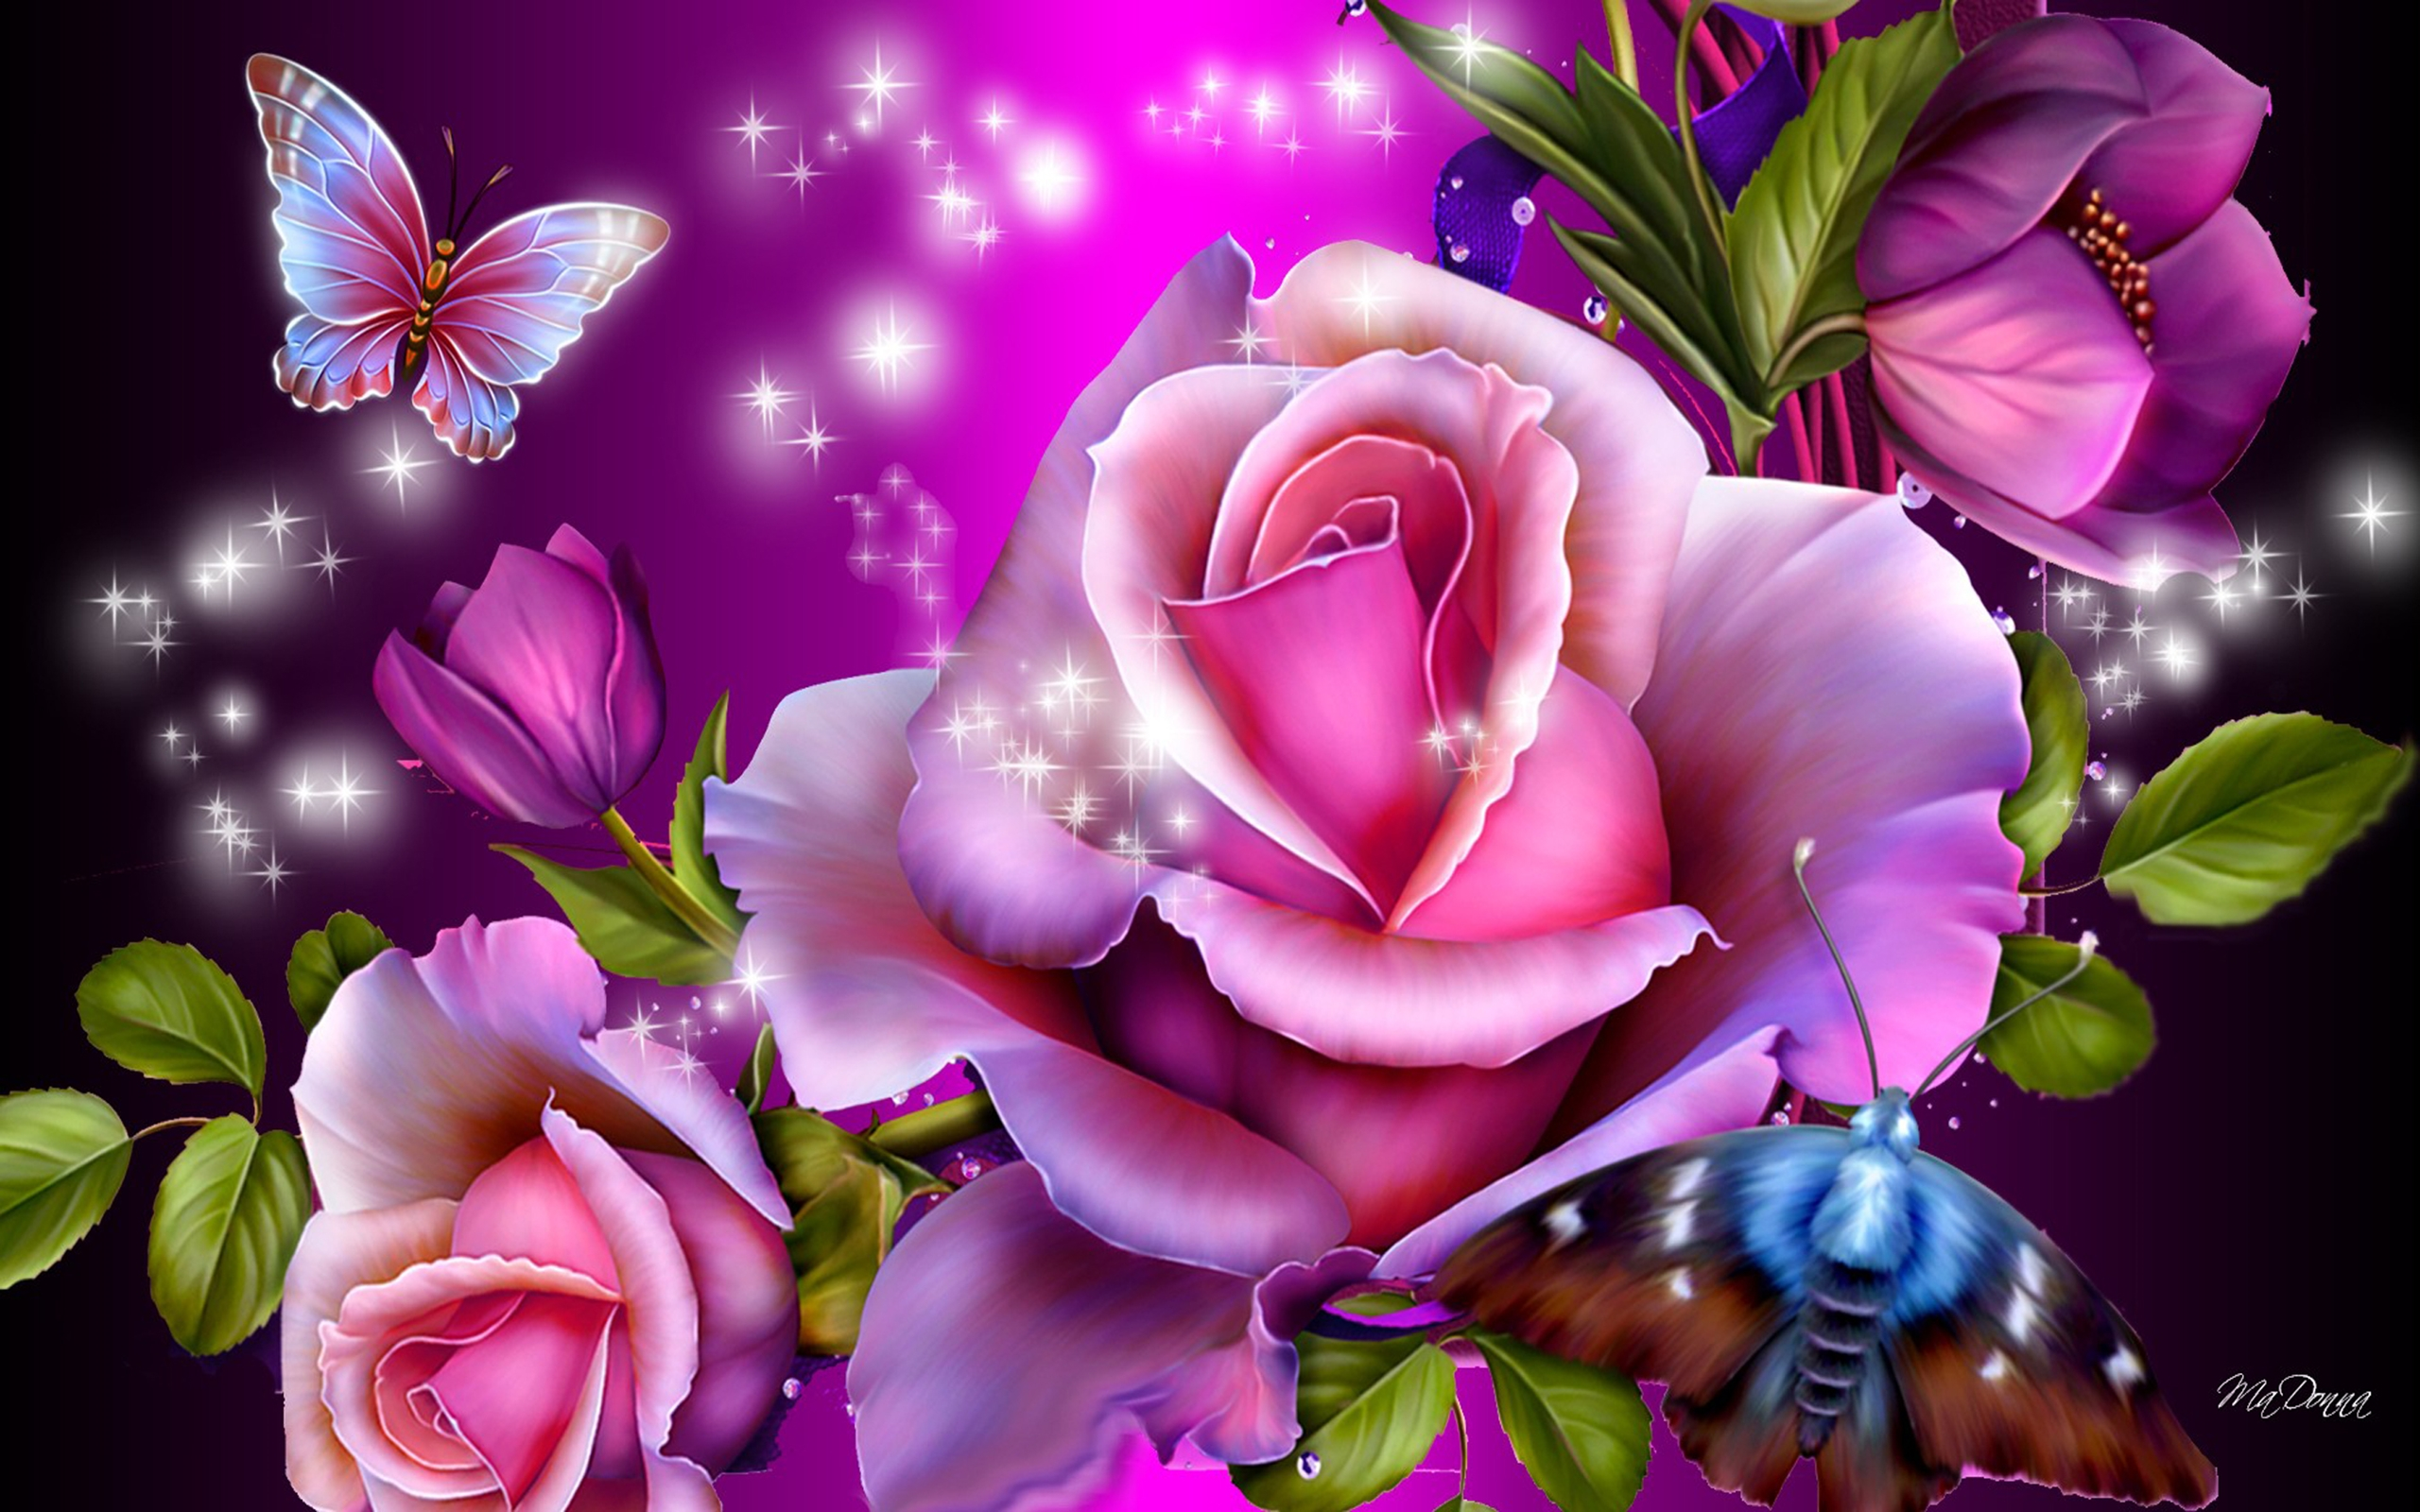 Roses And Butterflies Hd Wallpaper Background Image